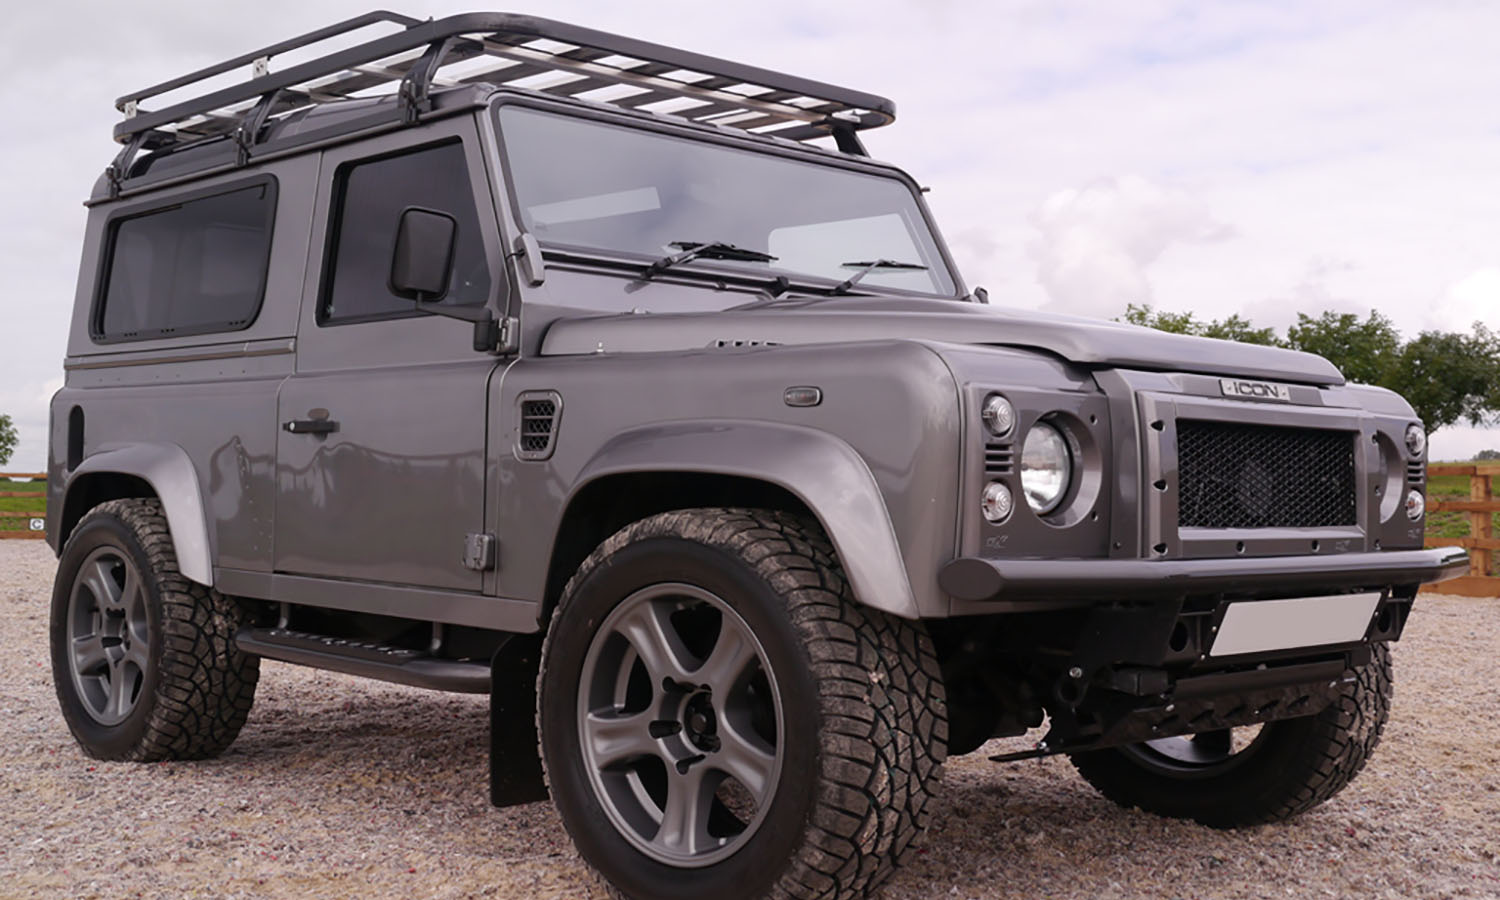 Hannibal Roof Racks u2013 90 Series Defender & Roof Racks - Hannibal Safari Equipment